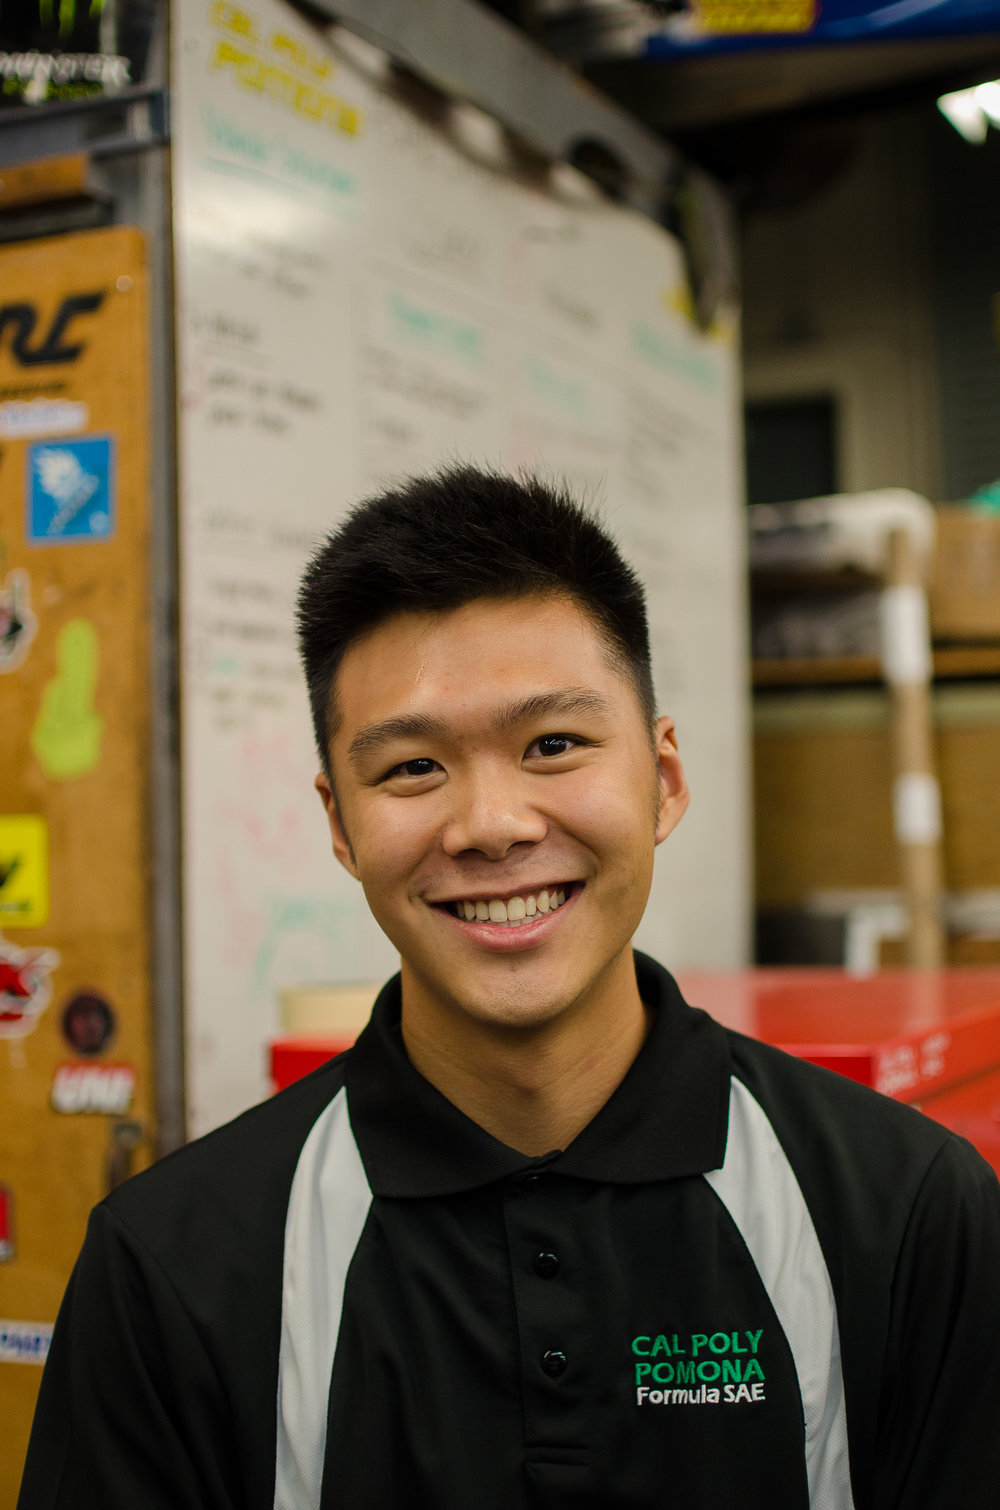 kevin wong Powertrain Lead Intake/Turbo Captain kwong1@cpp.edu